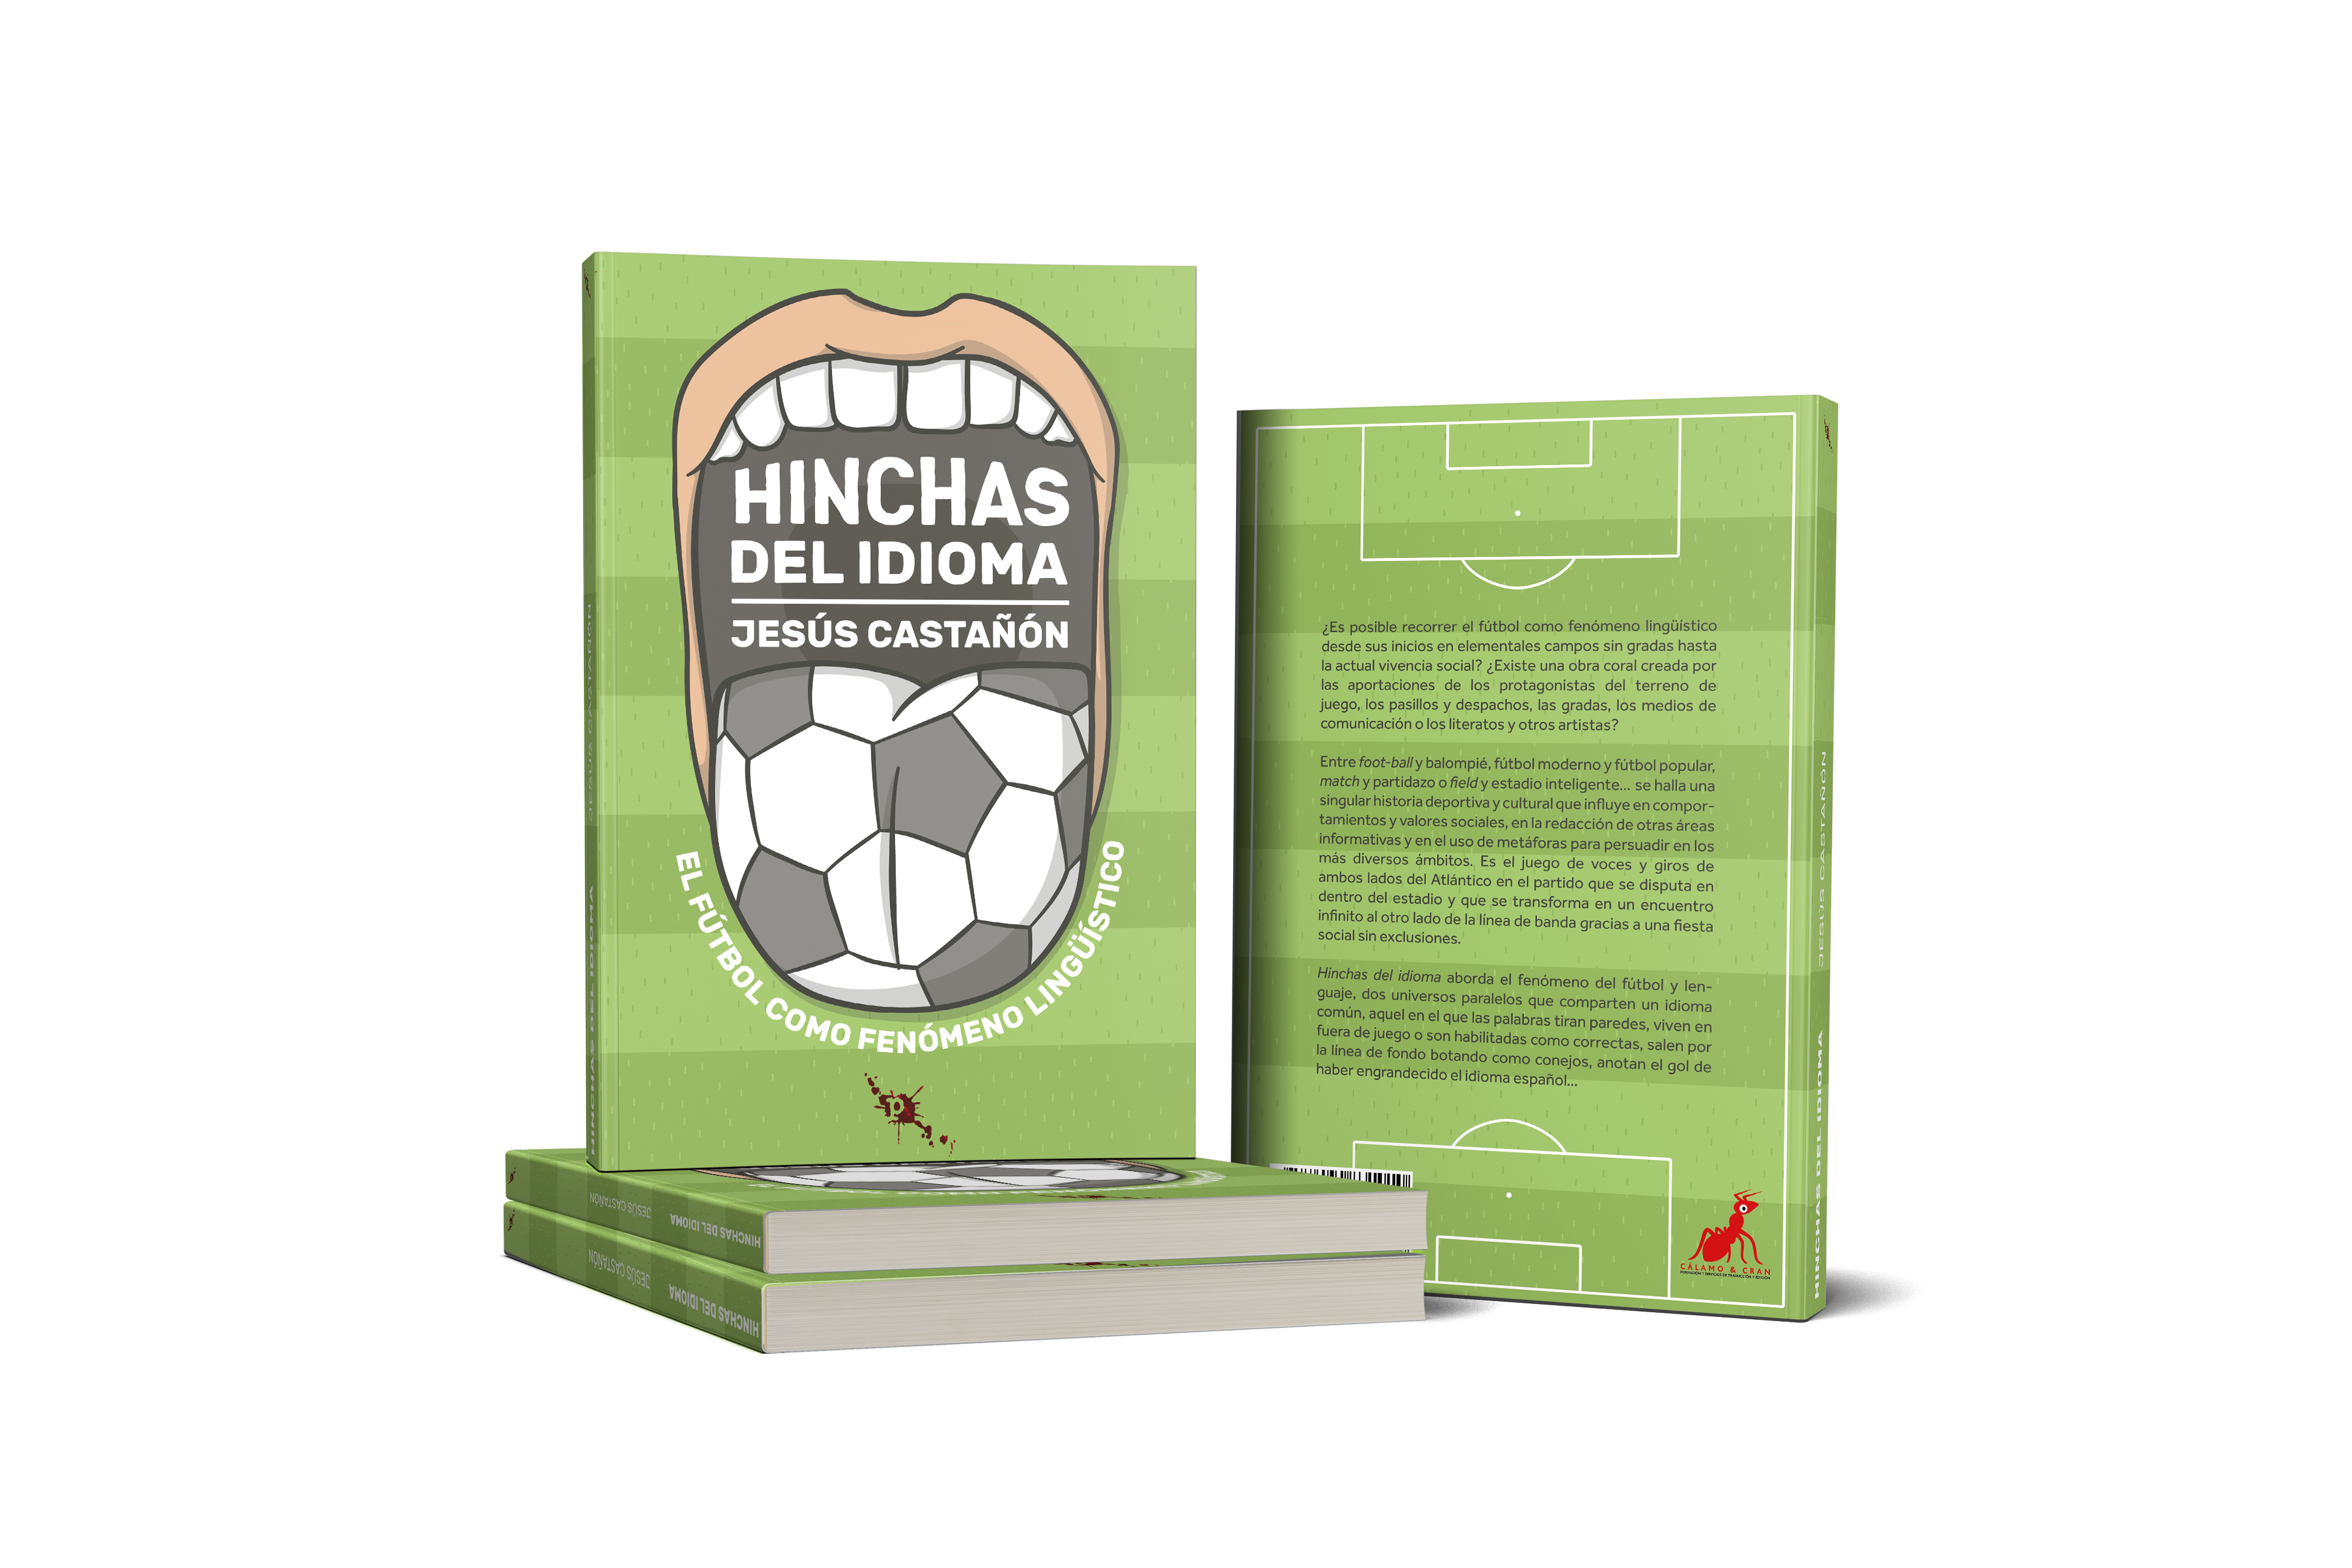 Cubierta Hinchas del idioma